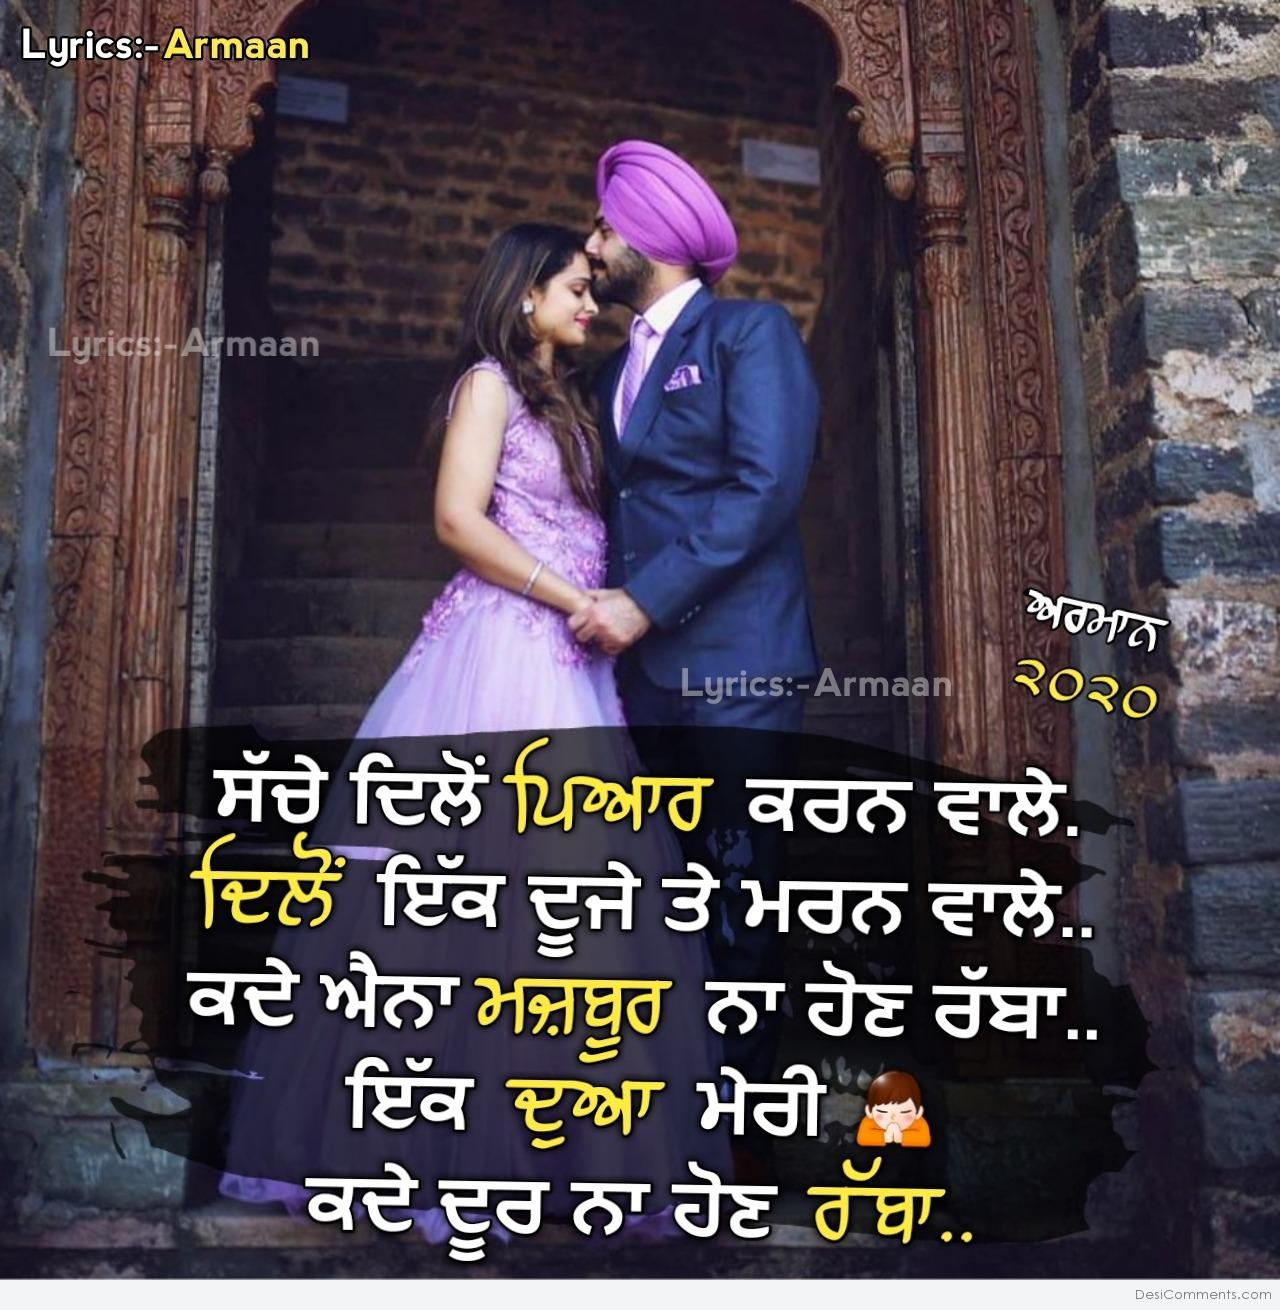 Deci Lover In Download: Punjabi Love Pictures, Images, Graphics